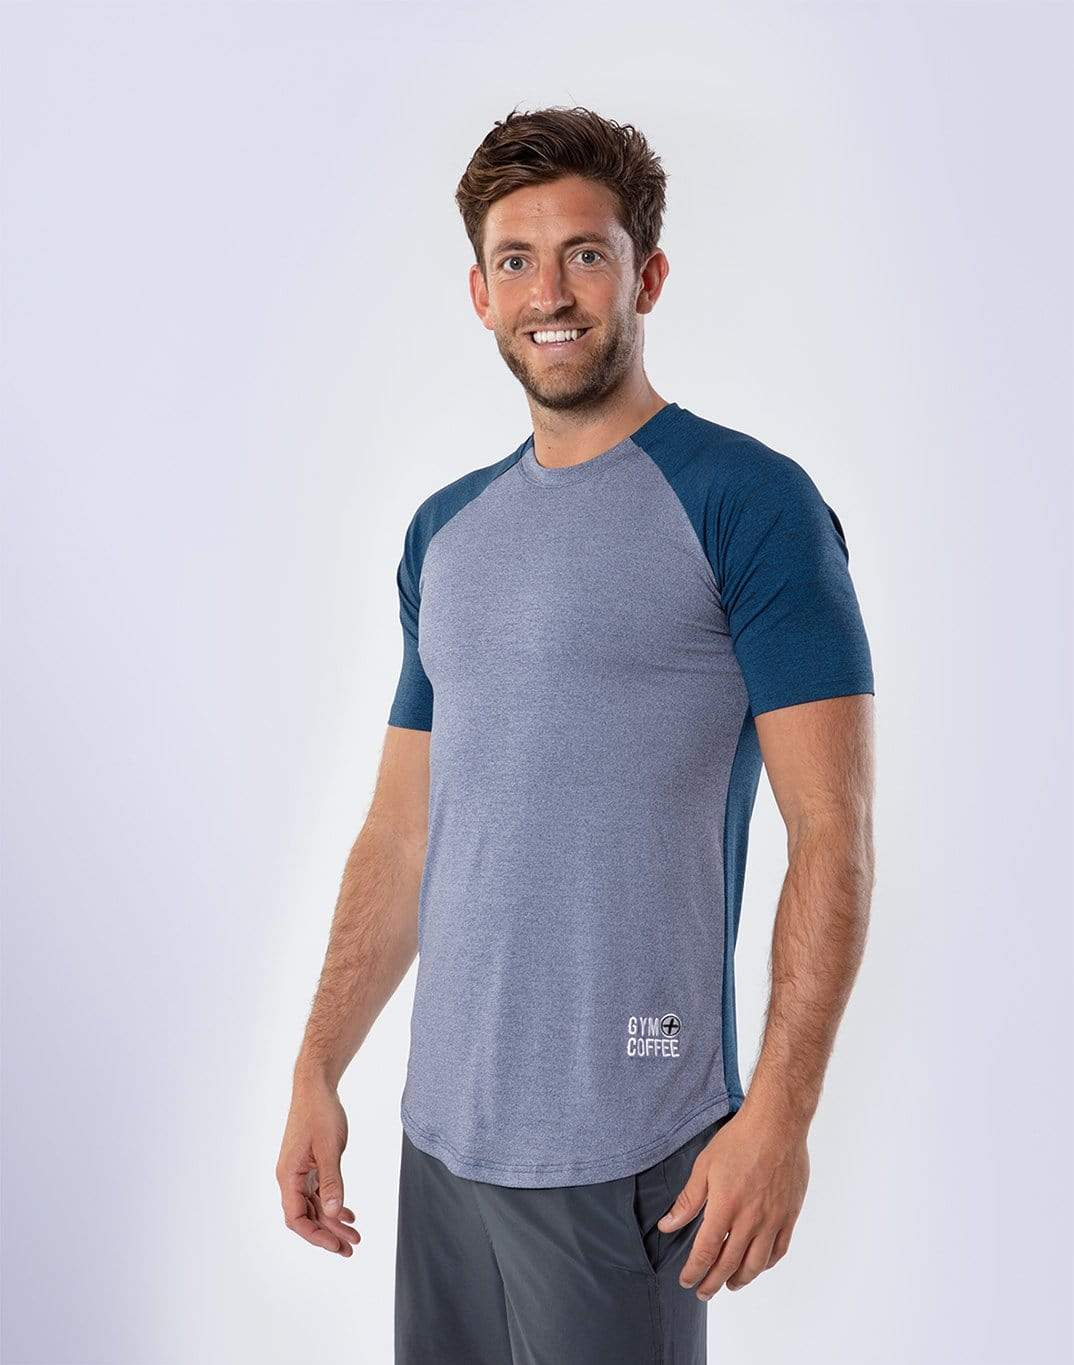 Gym Plus Coffee Men's T-Shirt Raglan 2Tech in Titanium/Navy Designed in Ireland